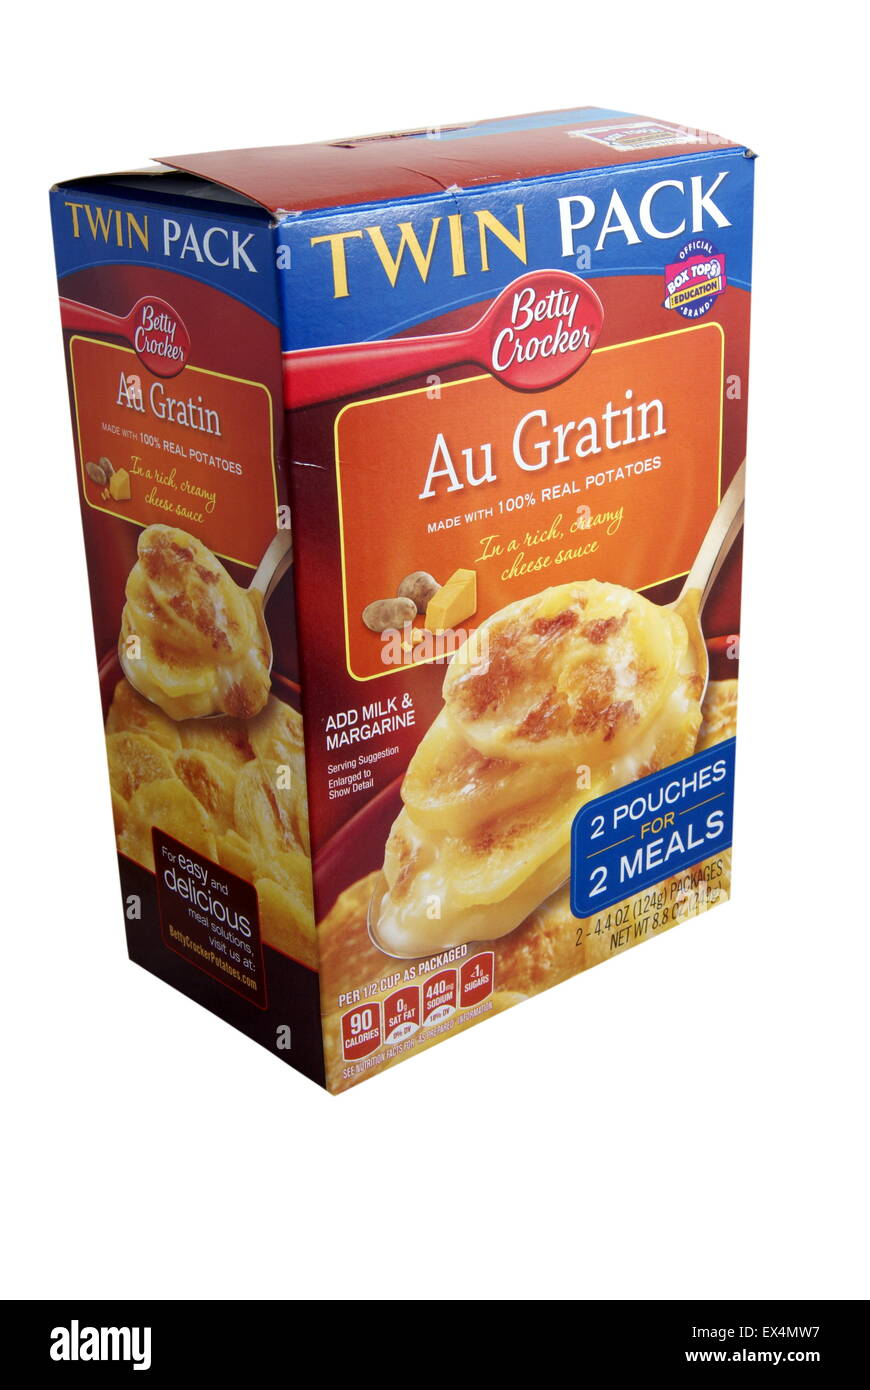 Twin pack box of Betty Crocker Au Gratin Potatoes distributed by General Mills Sales Inc, Minneapolis MN USA. Illustrative - Stock Image